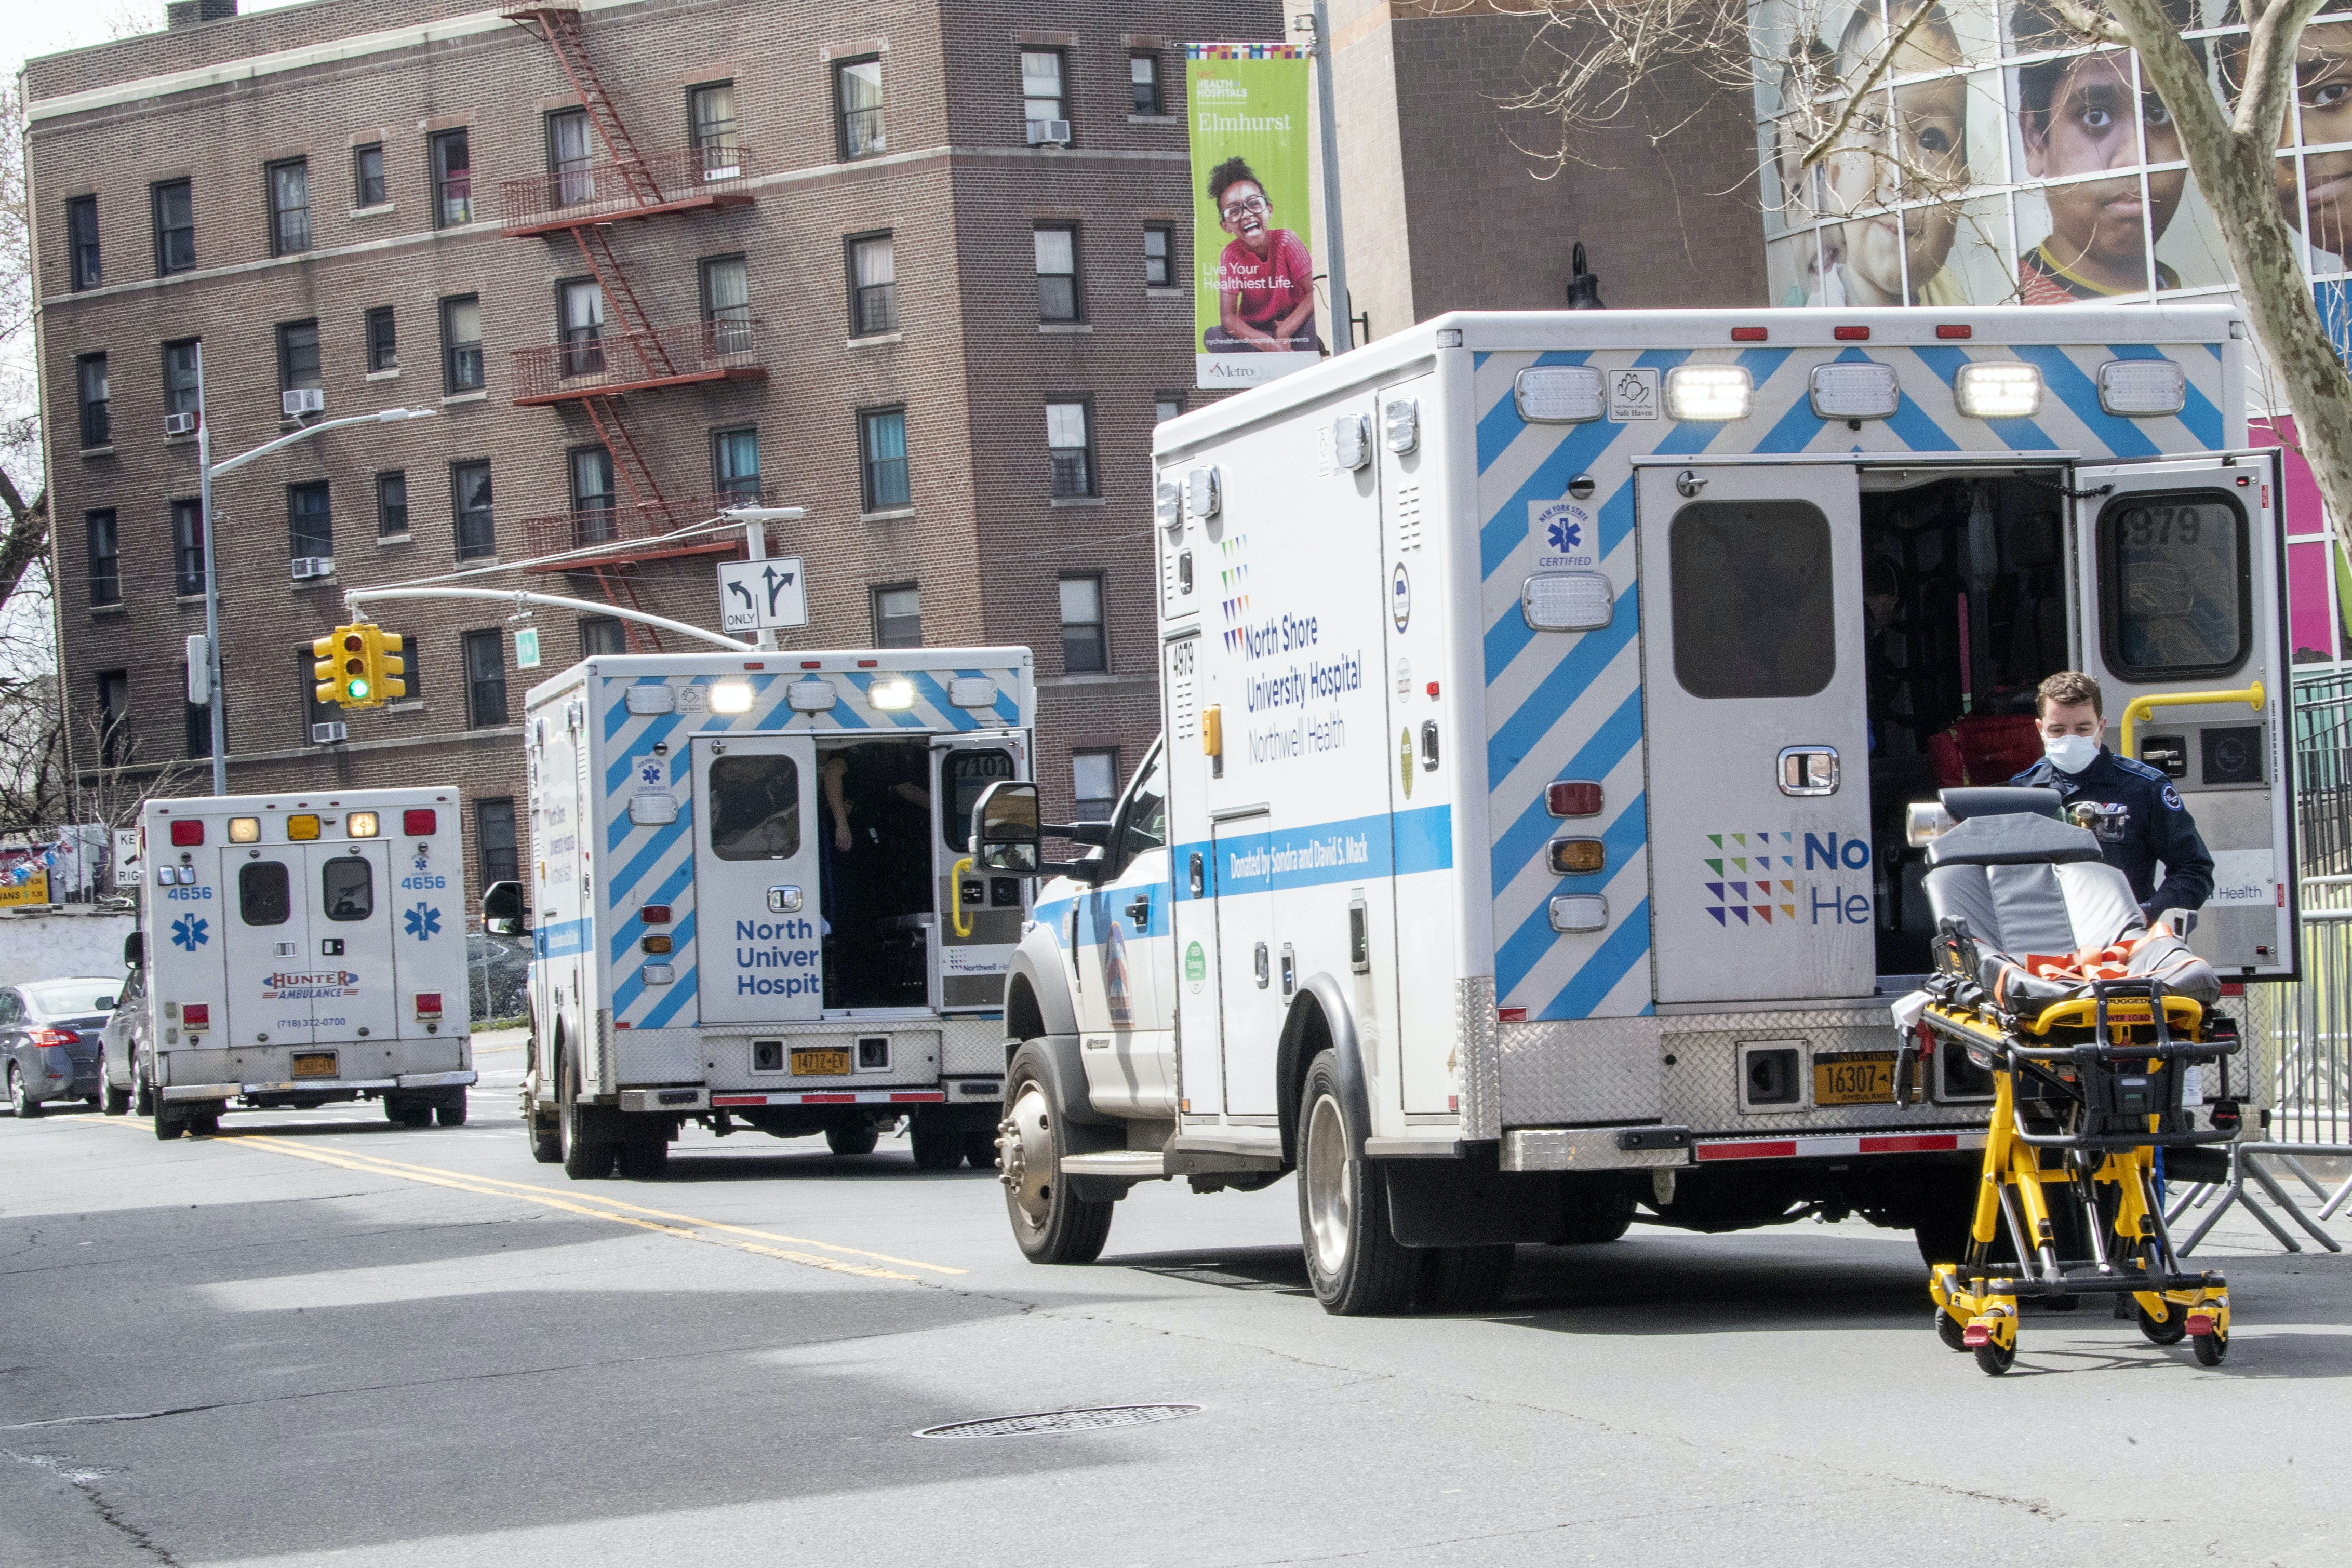 Three ambulances lined up in front of a hospital.